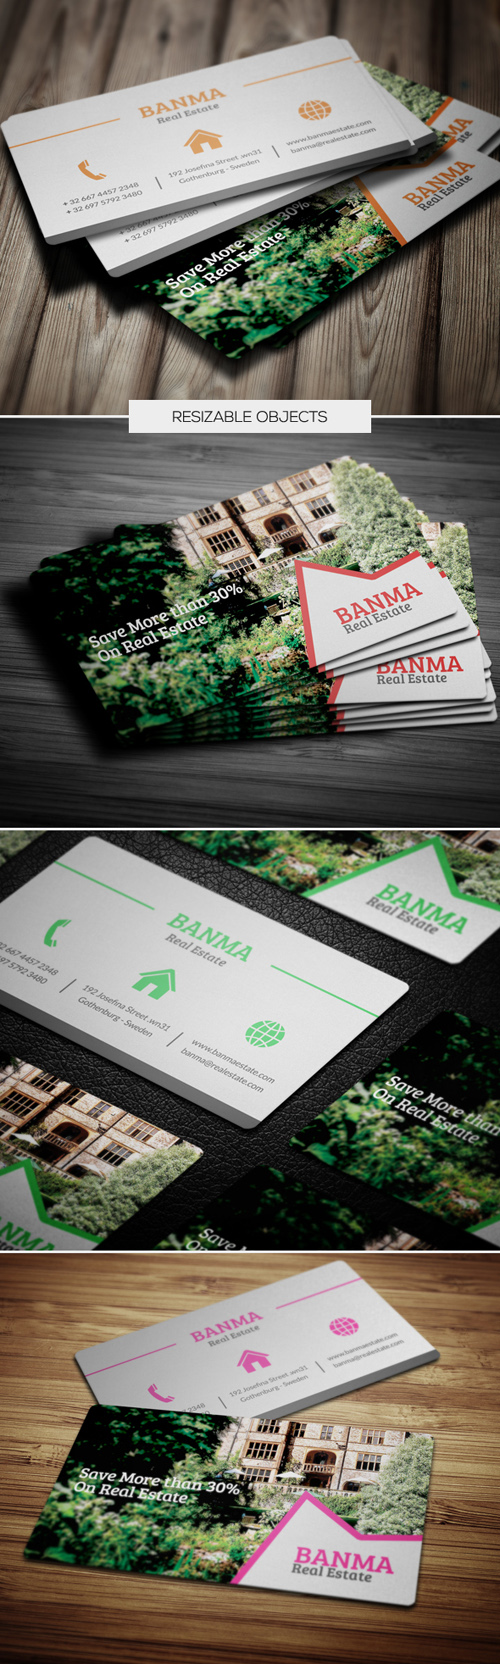 Read Estate Business Cards Design-3